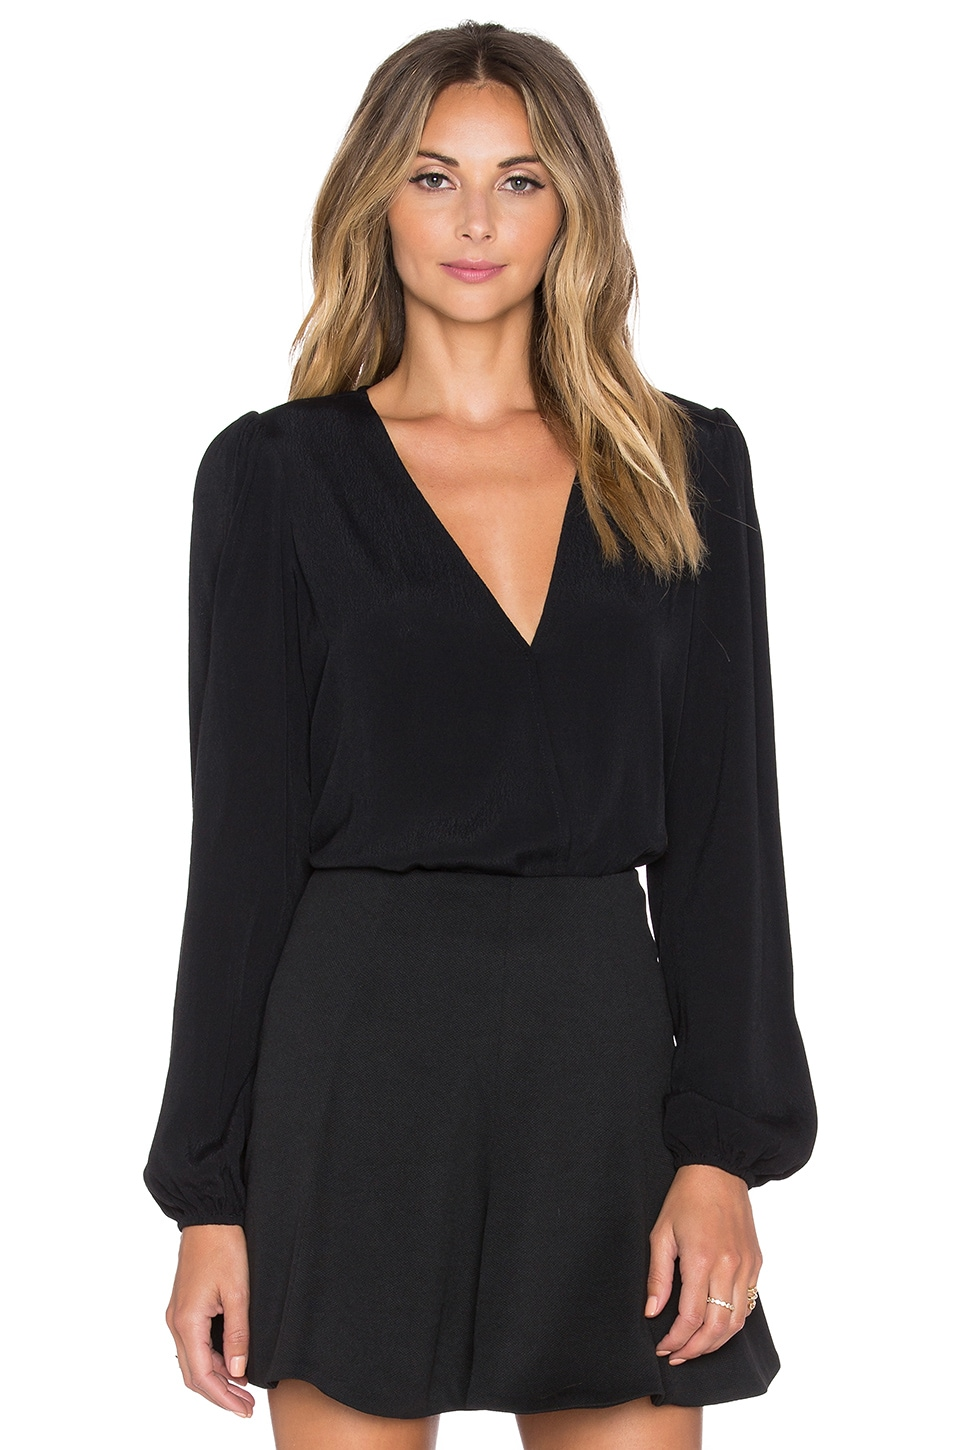 Lovers + Friends x REVOLVE Vision Long Sleeve Bodysuit in Black